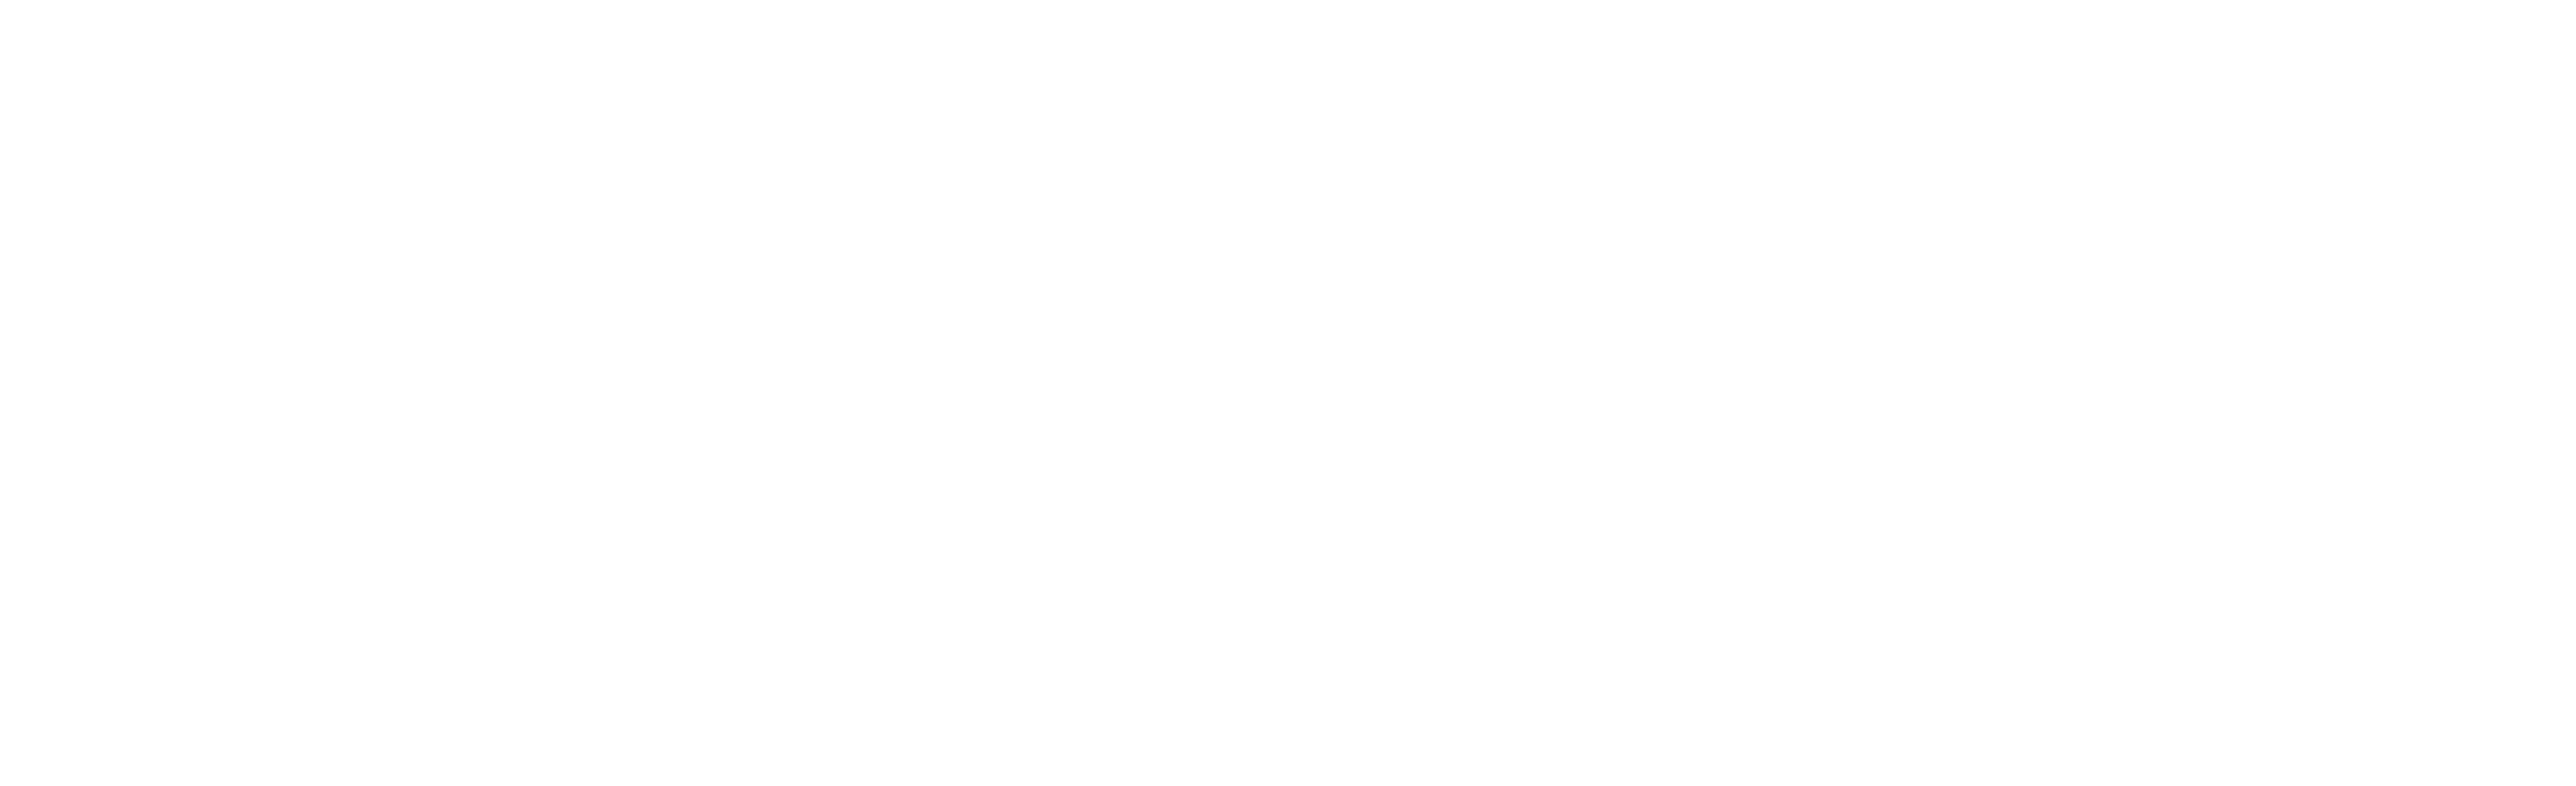 artbar-white-updated.png